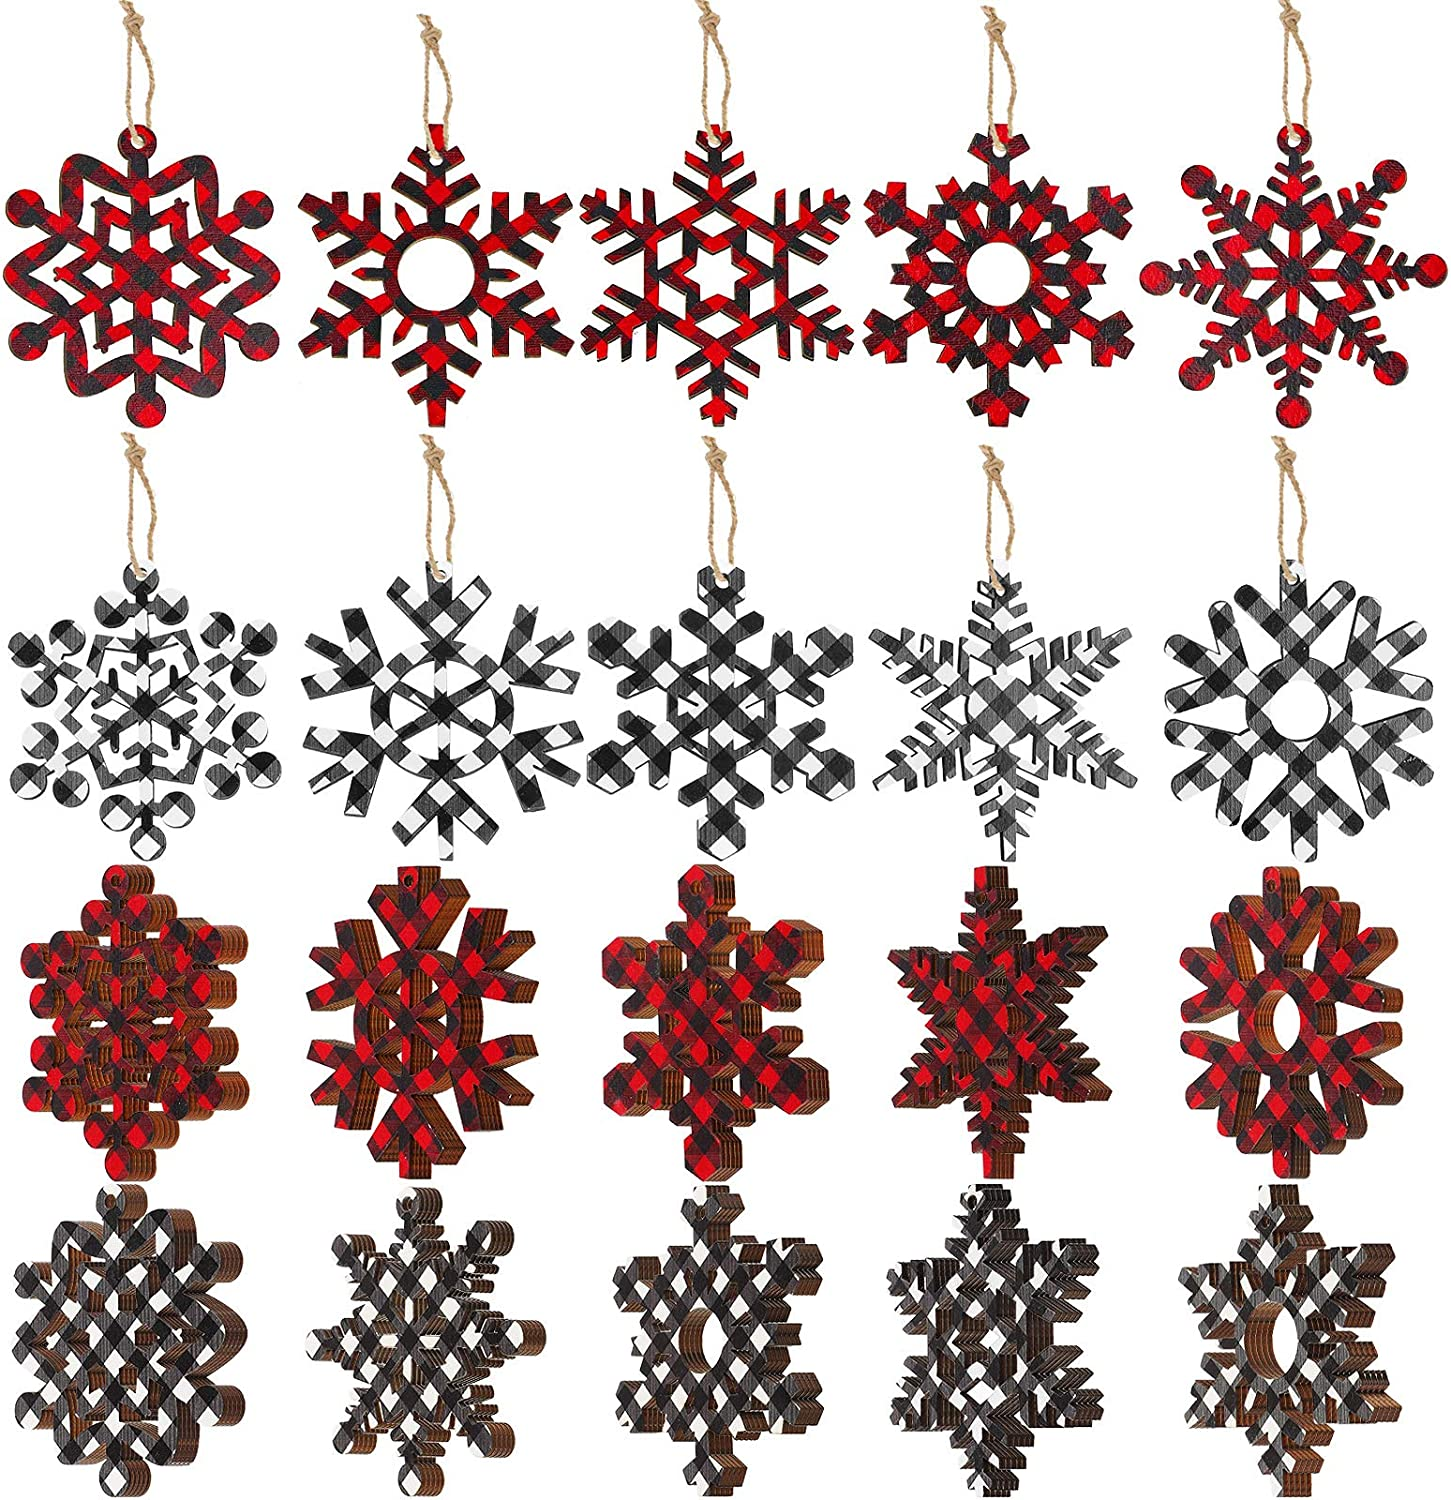 Buffalo Plaid Christmas Wooden Snowflake Ornament Snowflakes Wood Slice Craft Wood Set with Twine for DIY Craft Christmas Hanging Ornament Holiday Decoration (Red and Black, White and Black,60 Set)